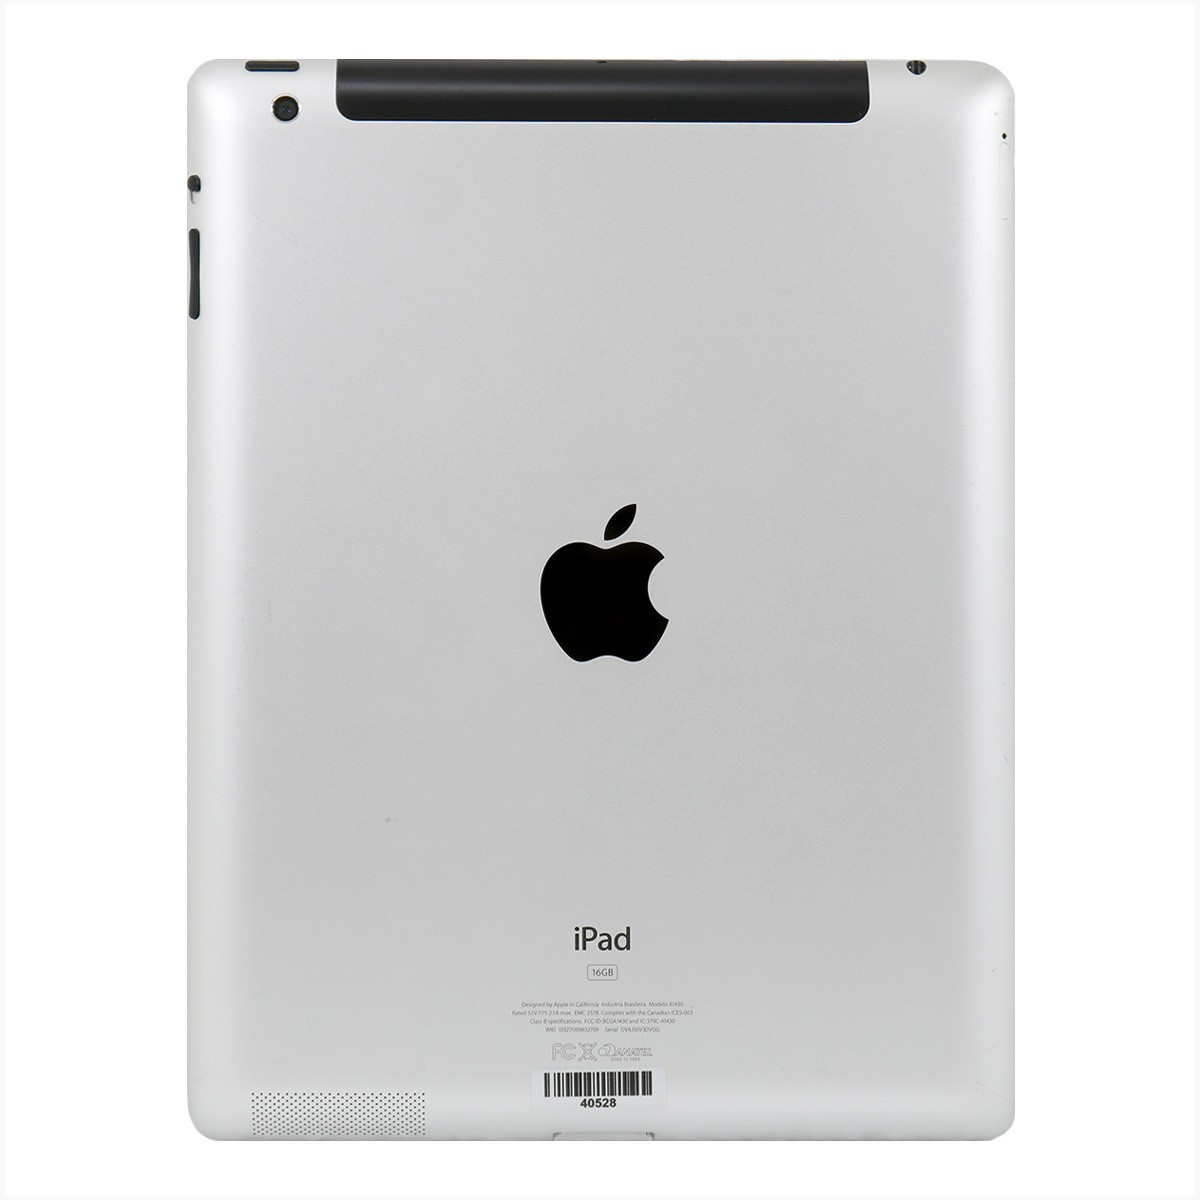 Ipad apple a1430 wi-fi - 4g 16gb preto - usado